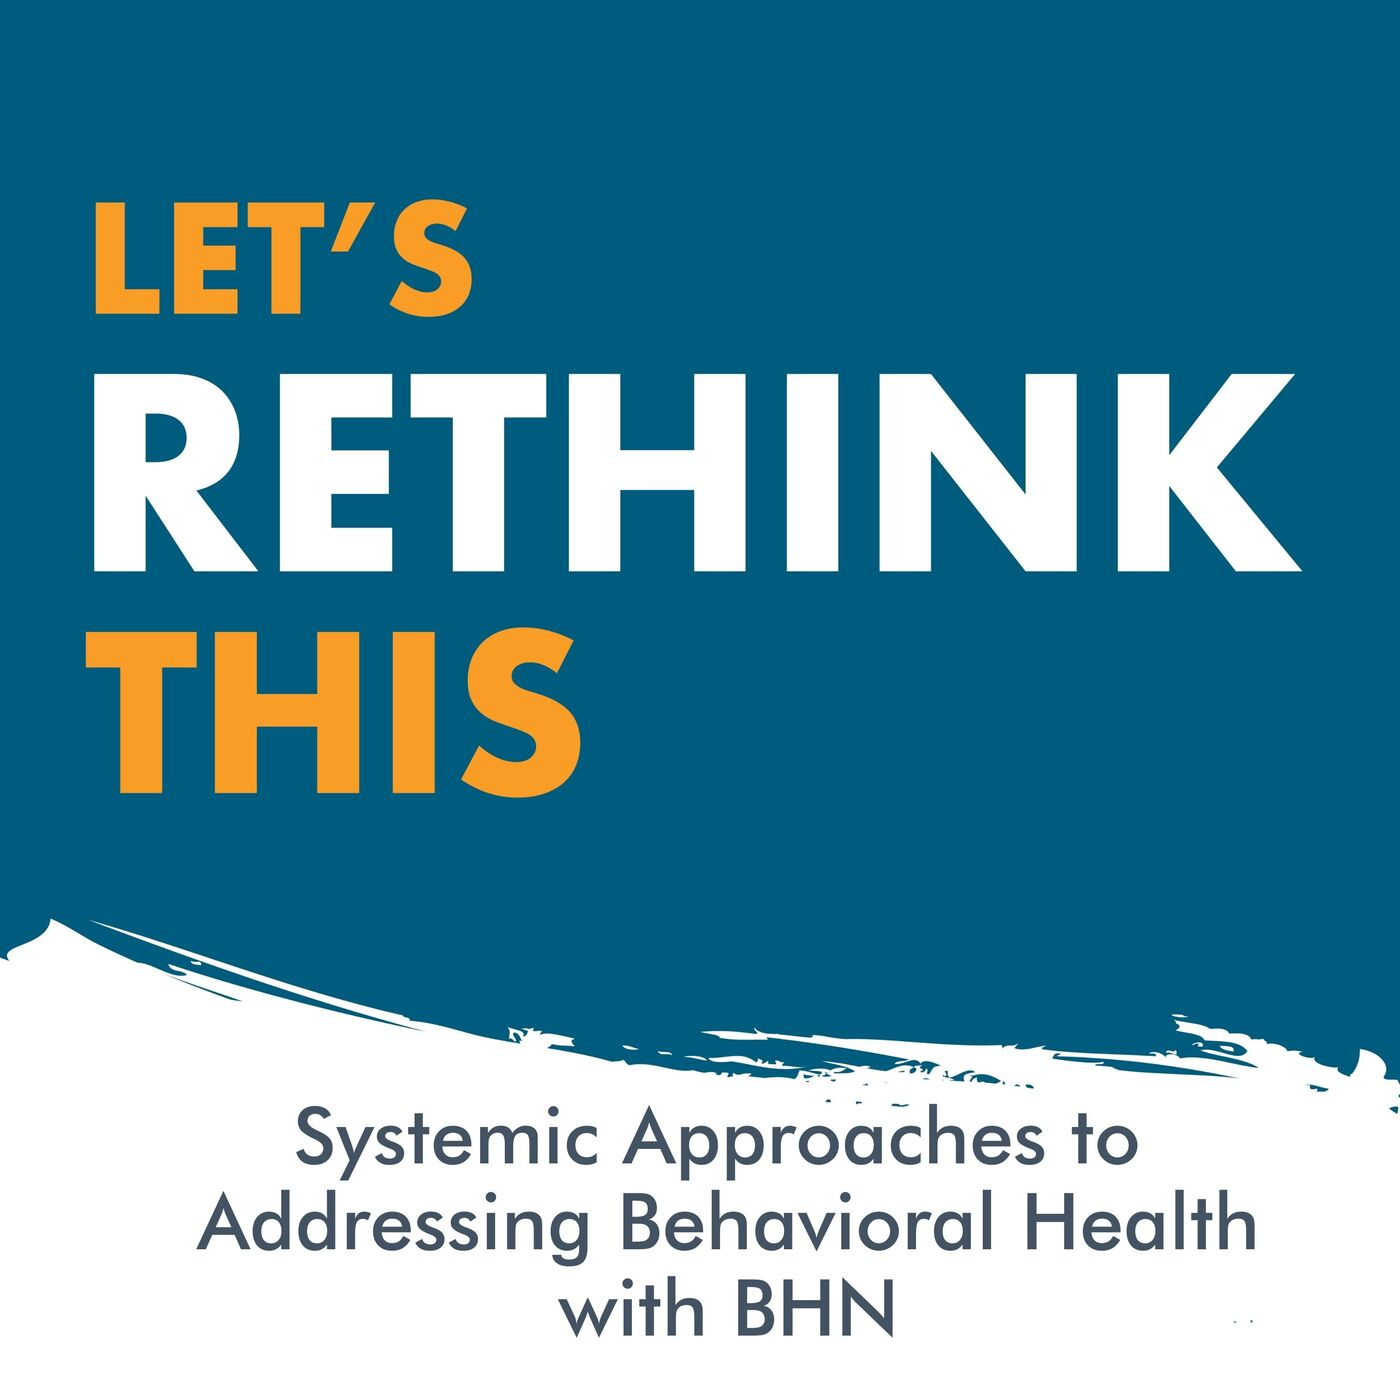 Systemic Approaches to Behavioral Health with BHN